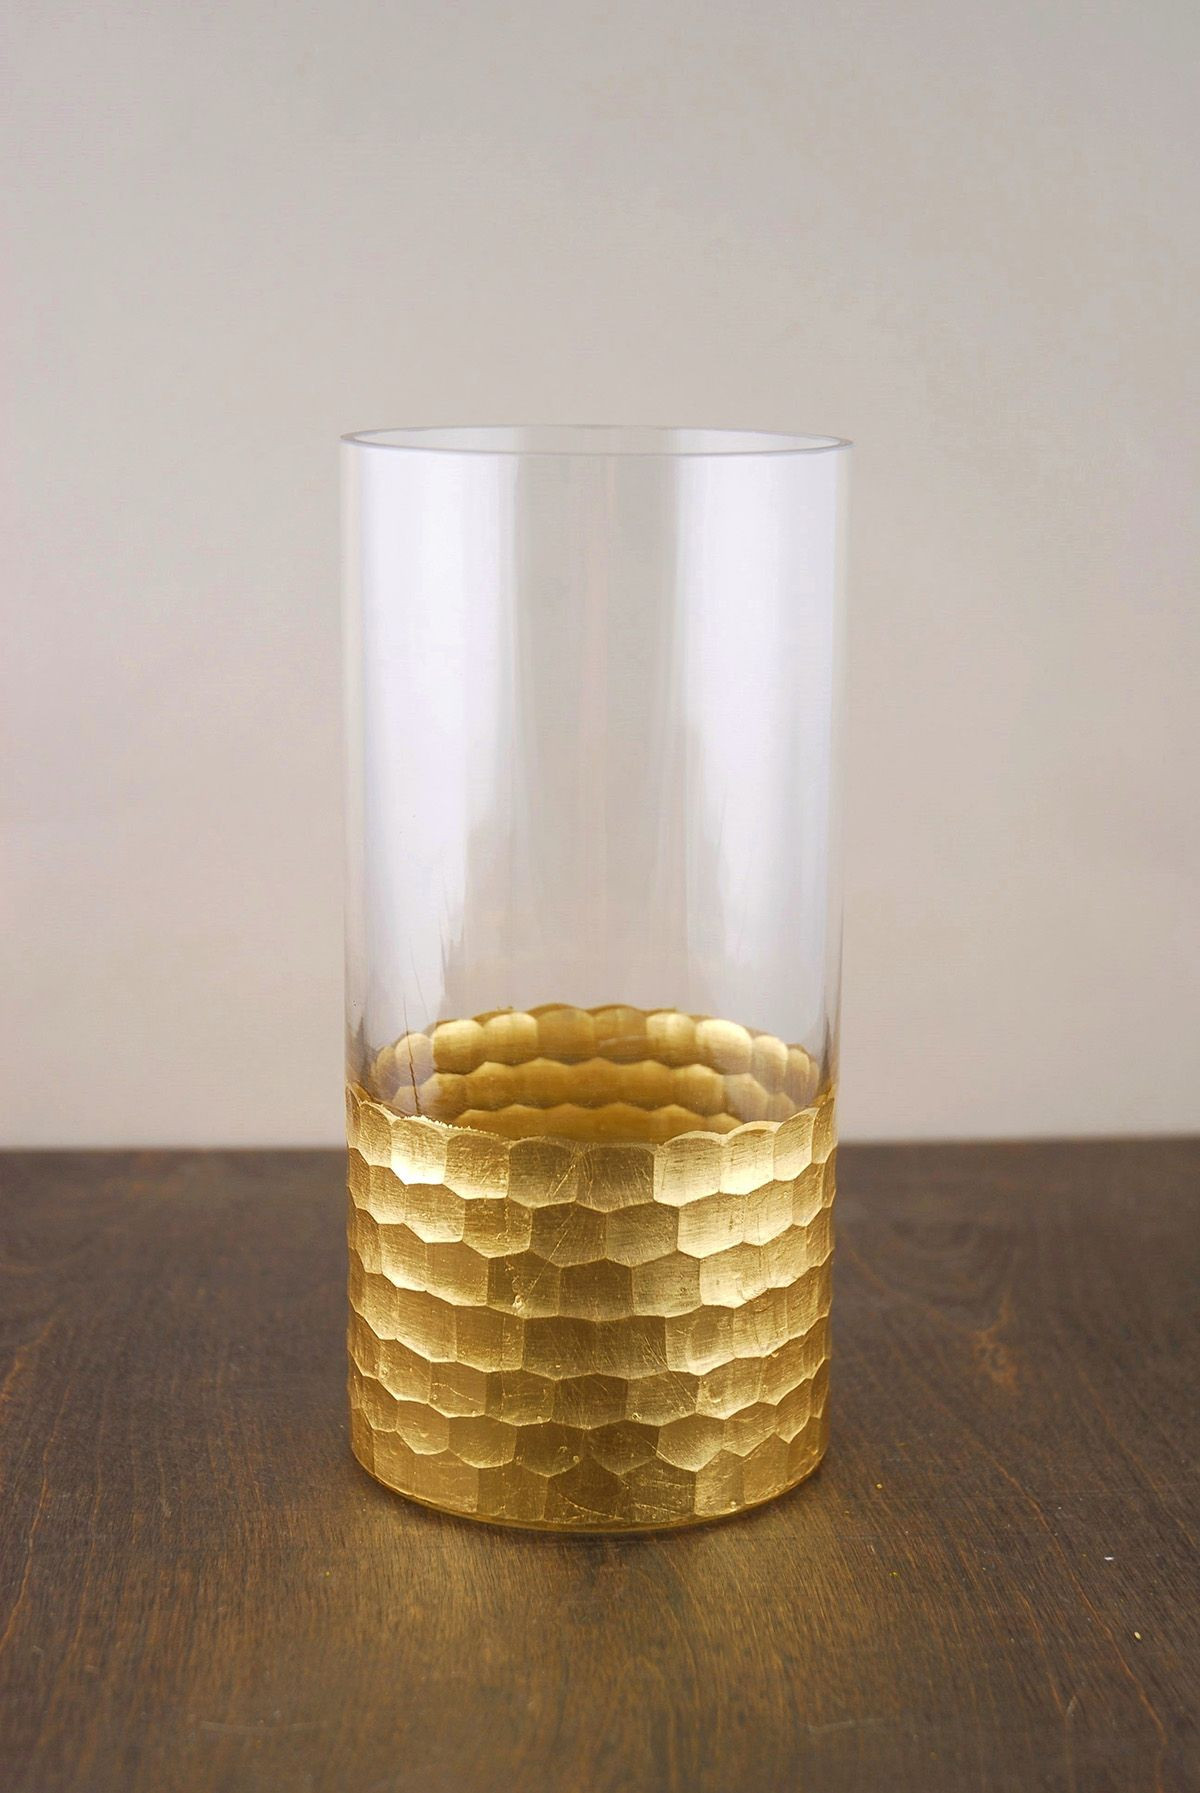 5 inch glass cylinder vase of gold cylinder vases images gold honey b cylinder vase 8 x 4 for gold cylinder vases images gold honey b cylinder vase 8 x 4